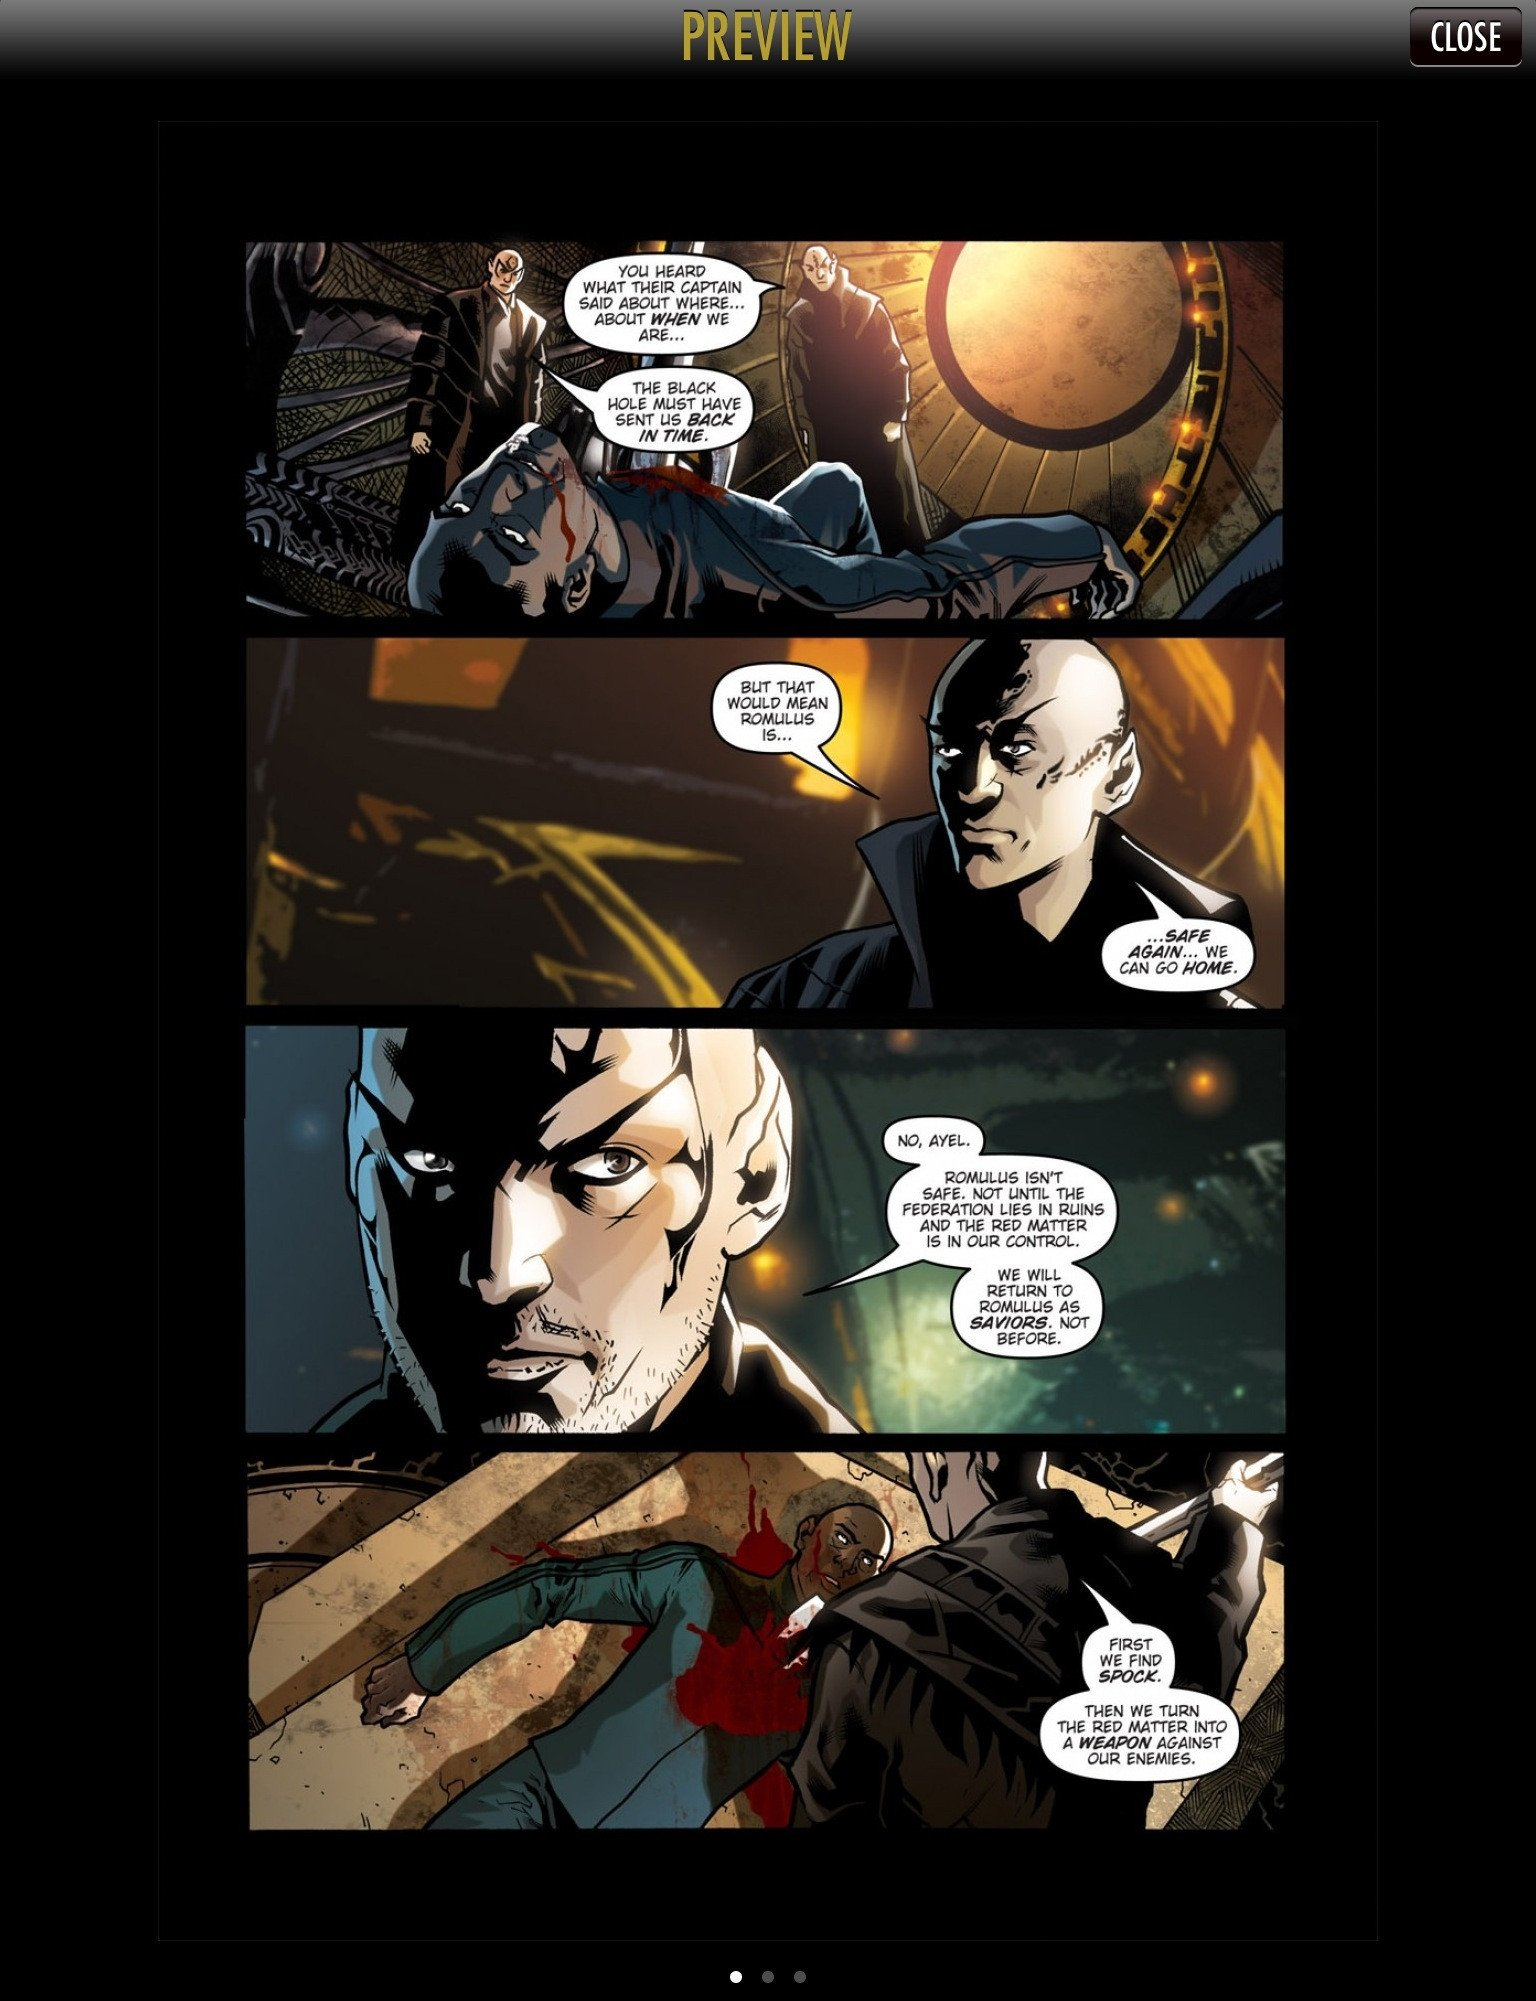 Screenshot from the Star Trek Comics app for iOS, showing a free preview of a page from *Star Trek: Nero #1* from IDW Publishing